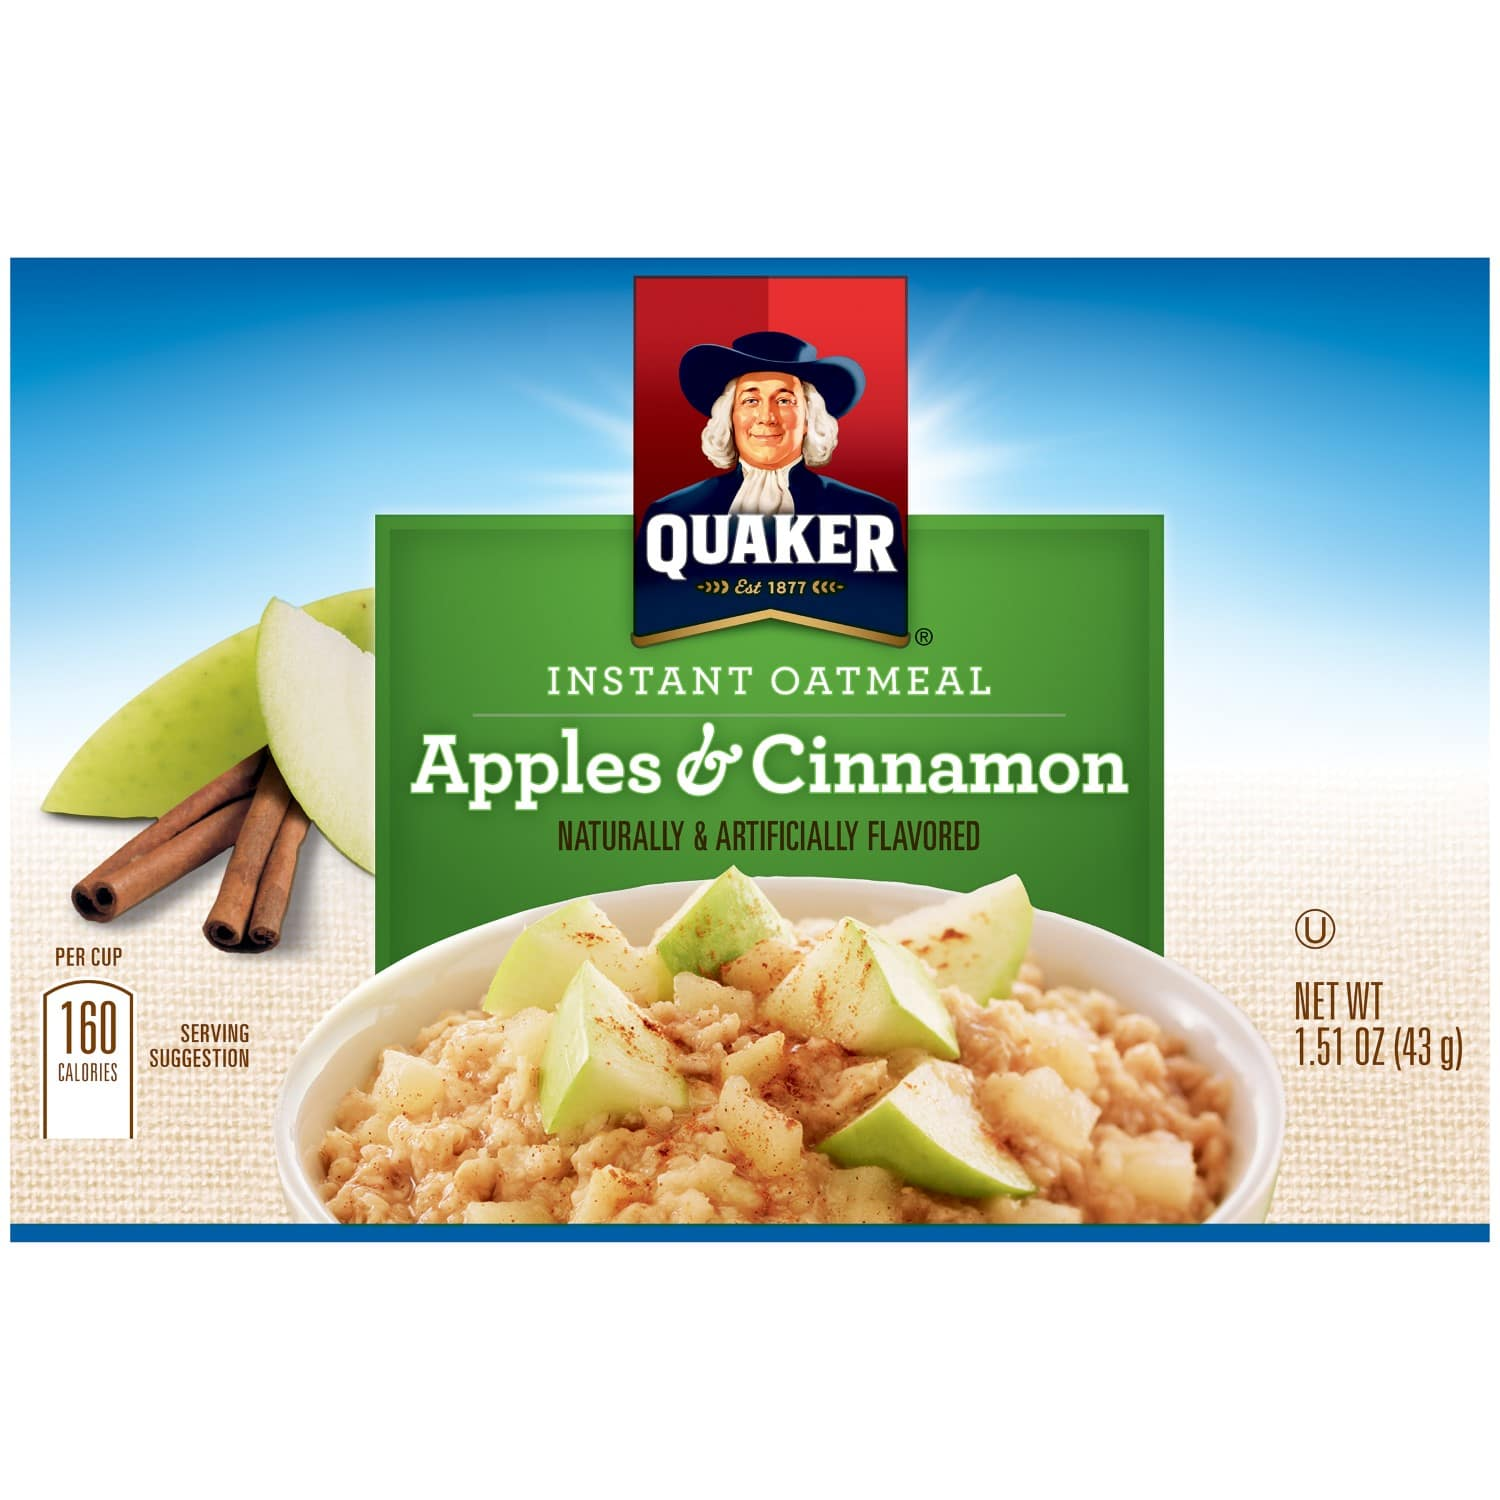 How many calories in a pack of apple cinnamon oatmeal